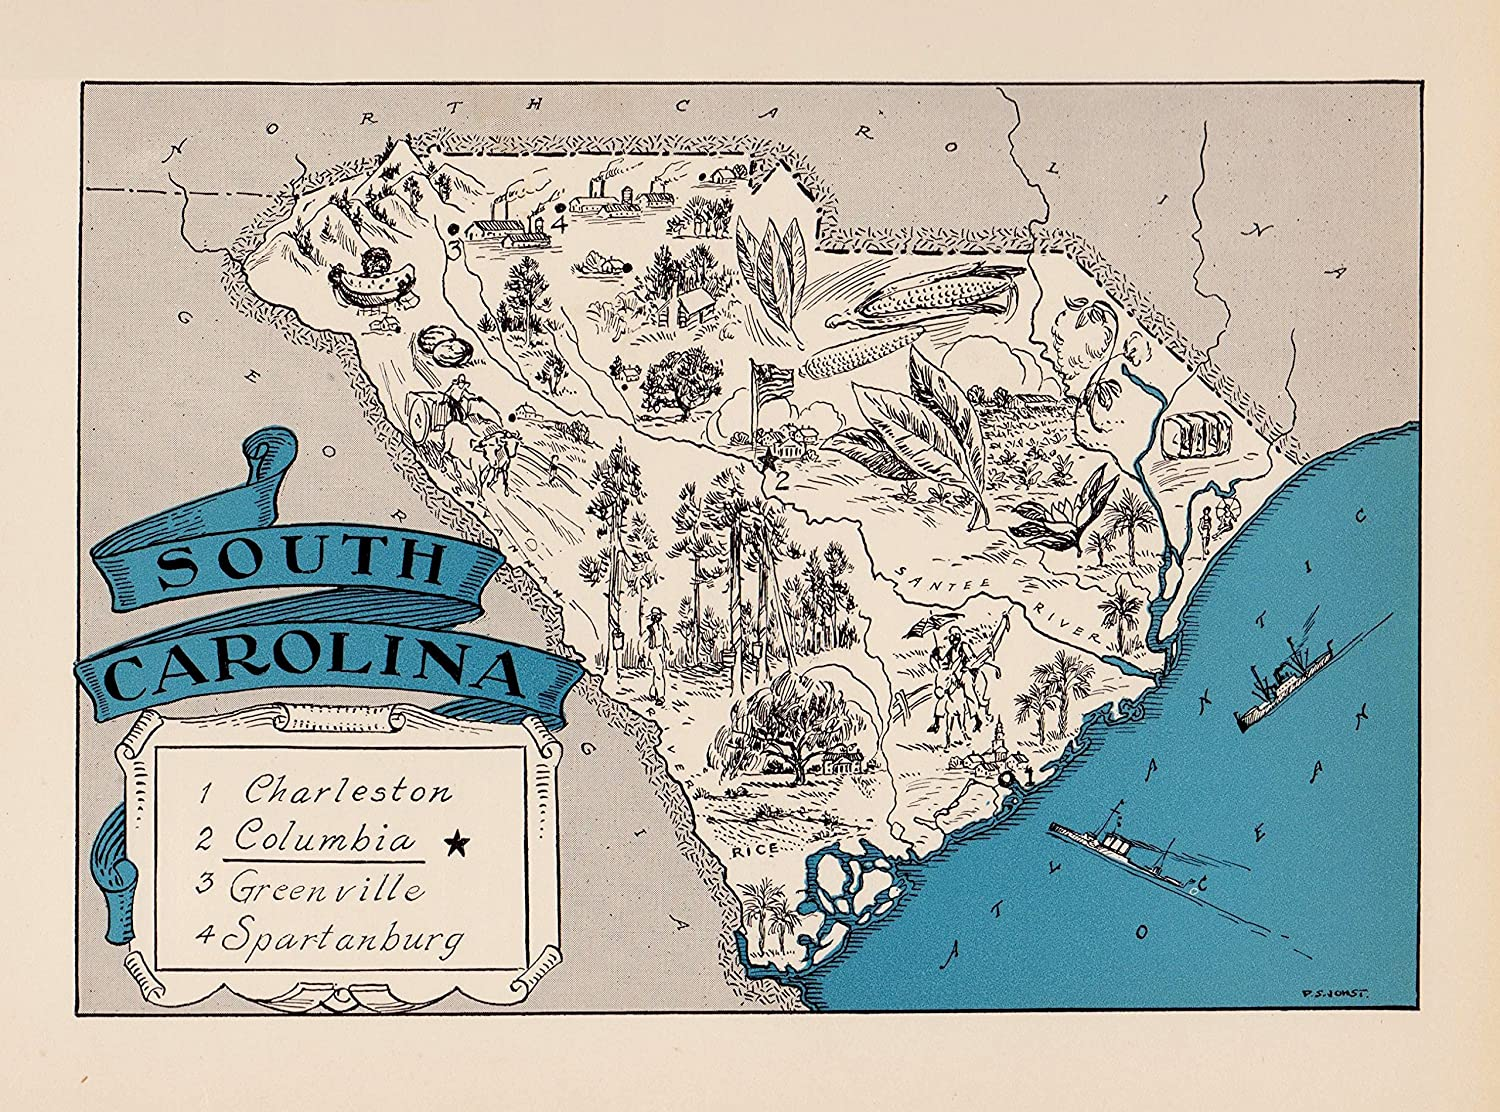 Amazon.com: Vintage South Carolina State Map 1930s Blue Pictorial ...